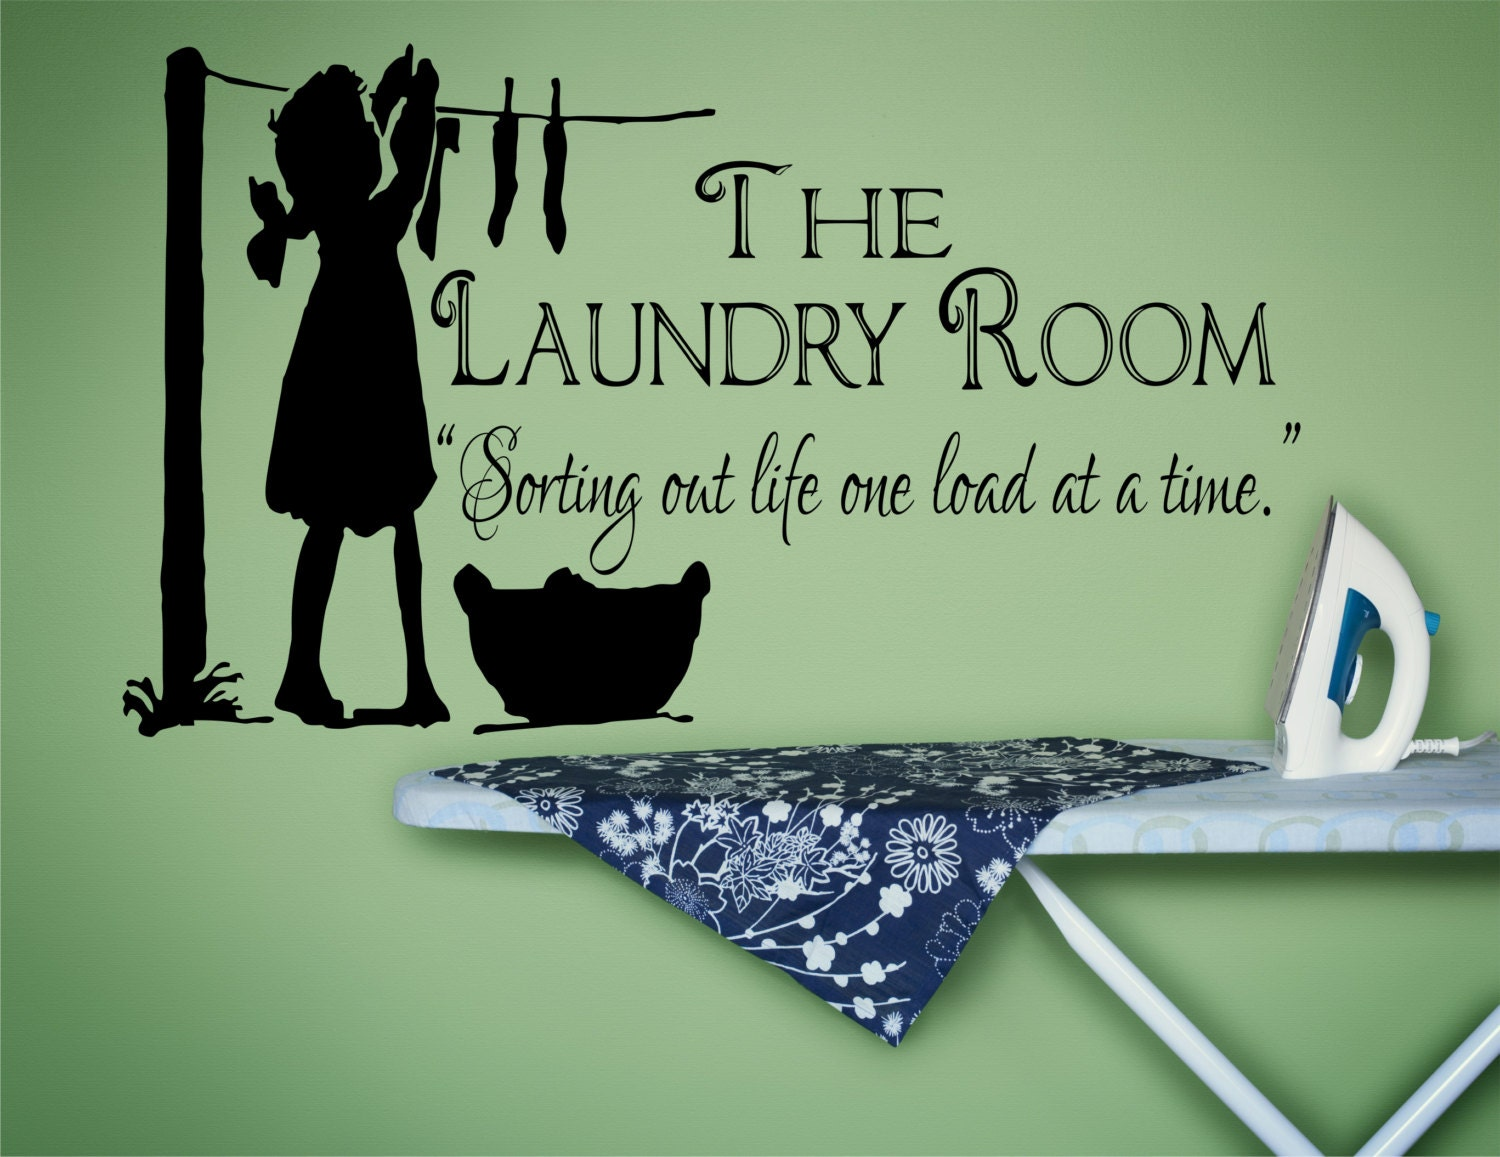 Laundry Decal Wall Decor Laundry Room Decor Laundry Sign Laundry Room Decal Laundry